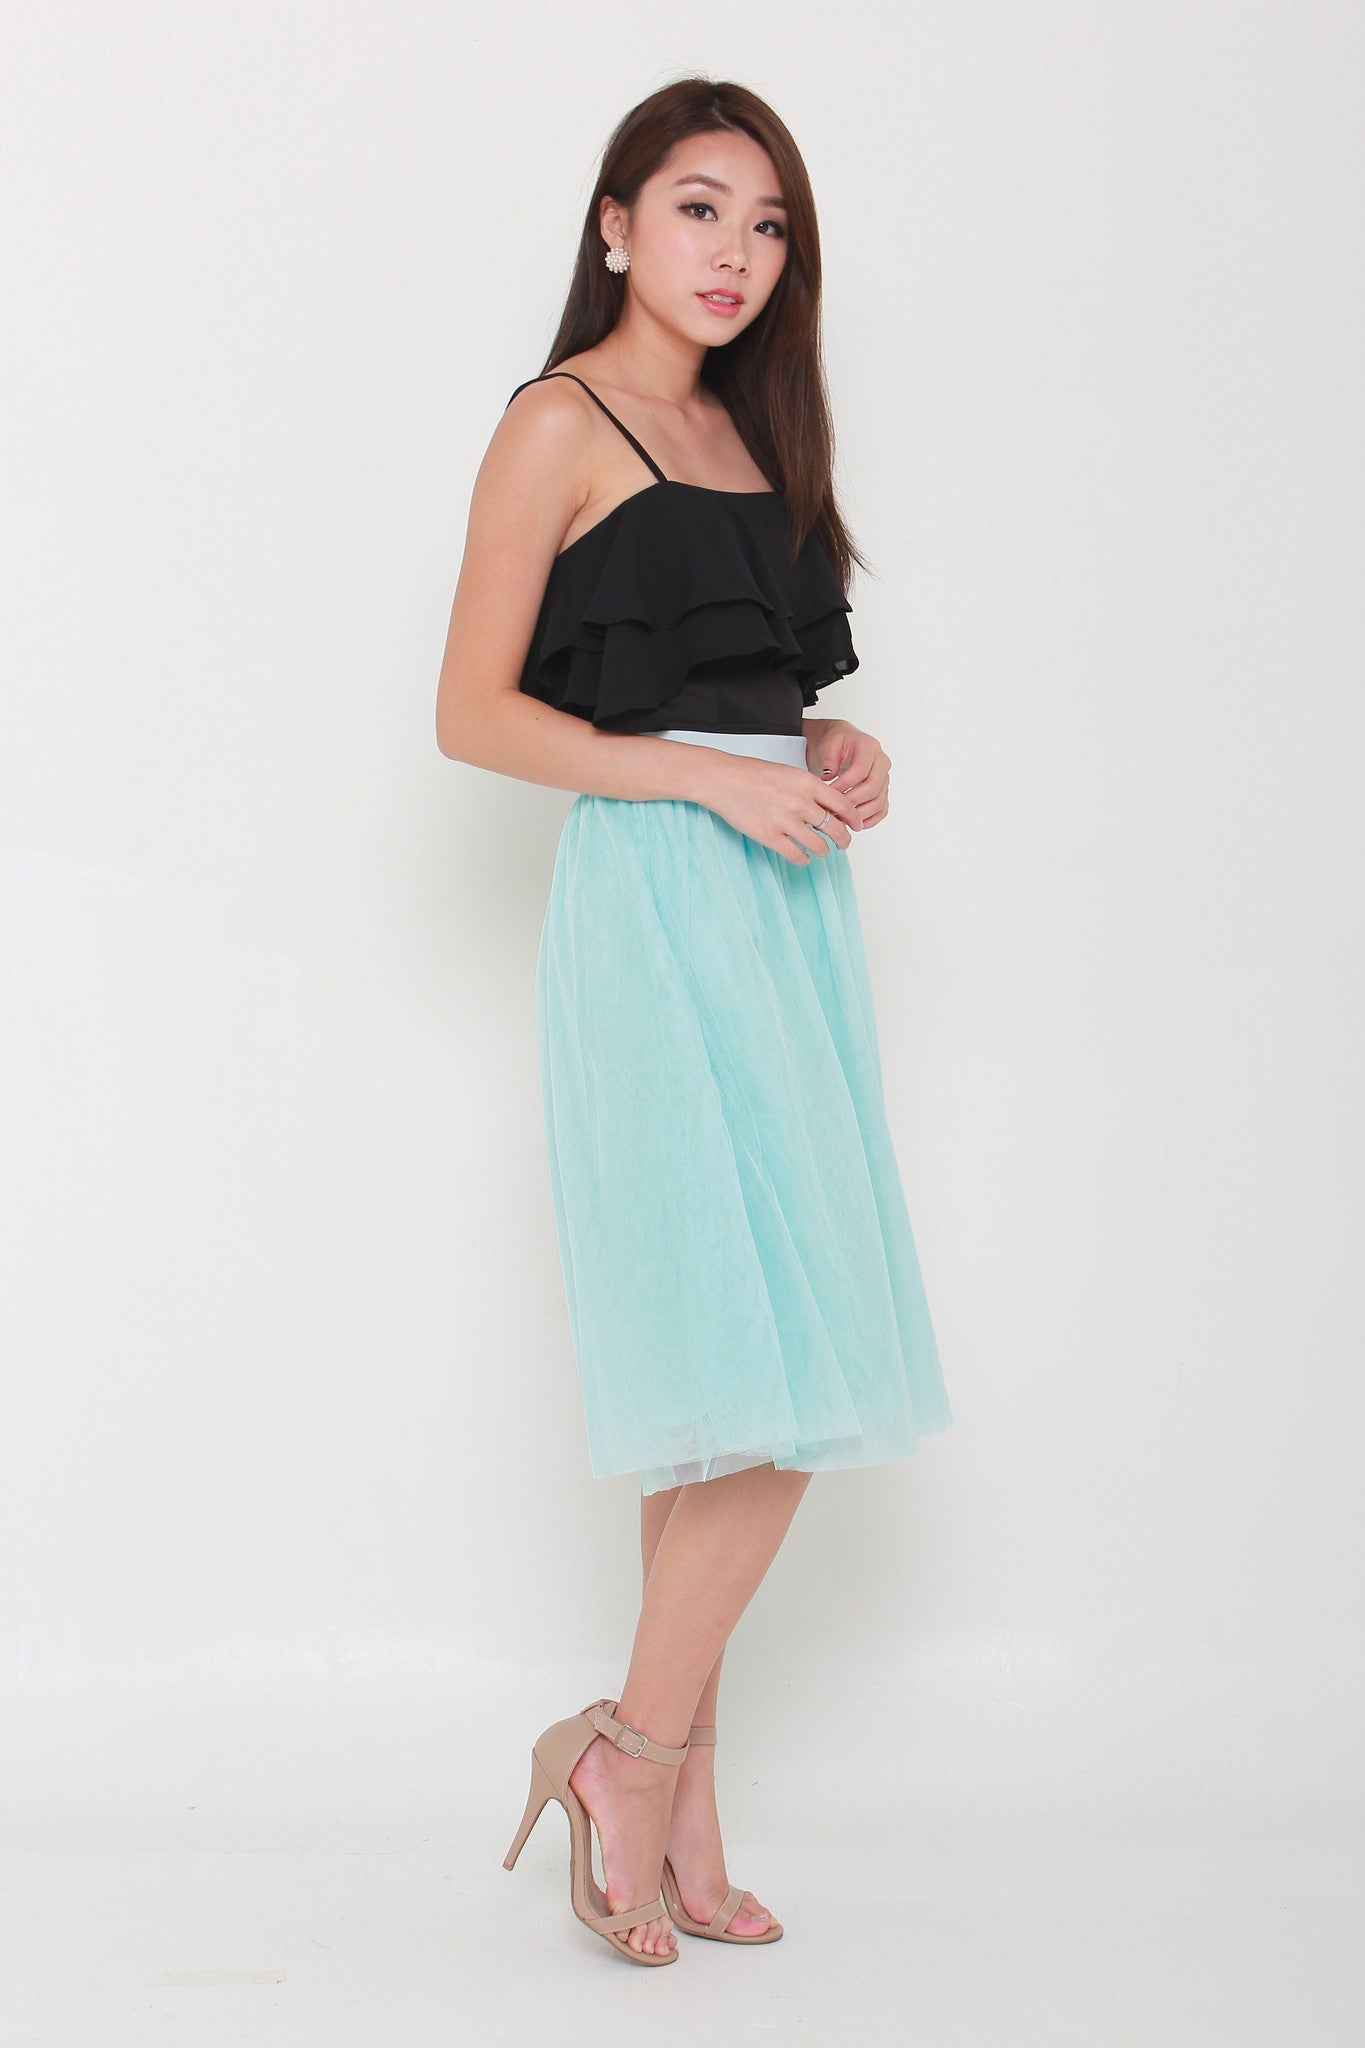 Belle Tulle Midi Skirt in Light Blue